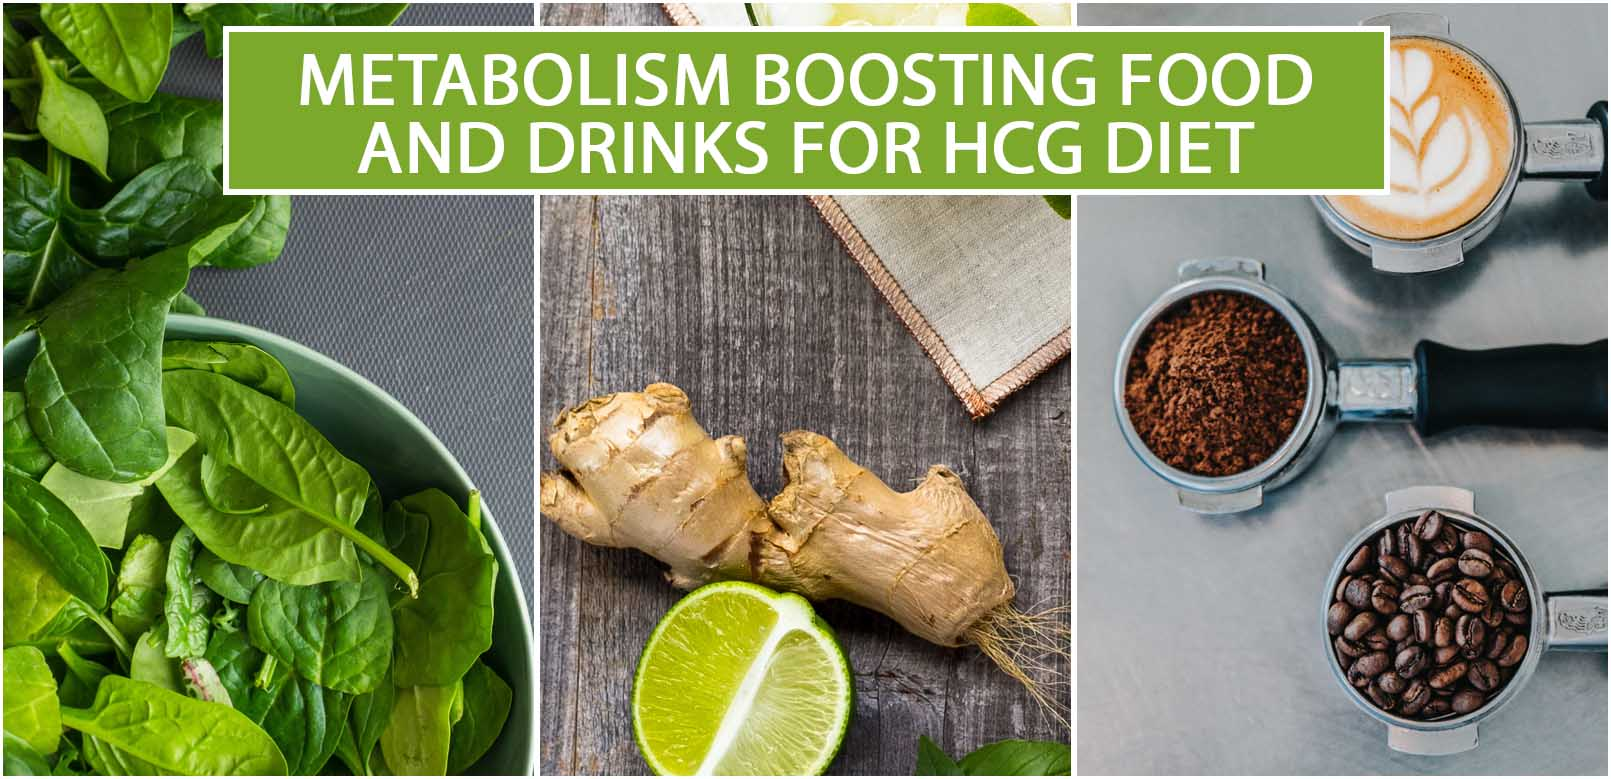 METABOLISM BOOSTING FOOD AND DRINKS FOR HCG DIET